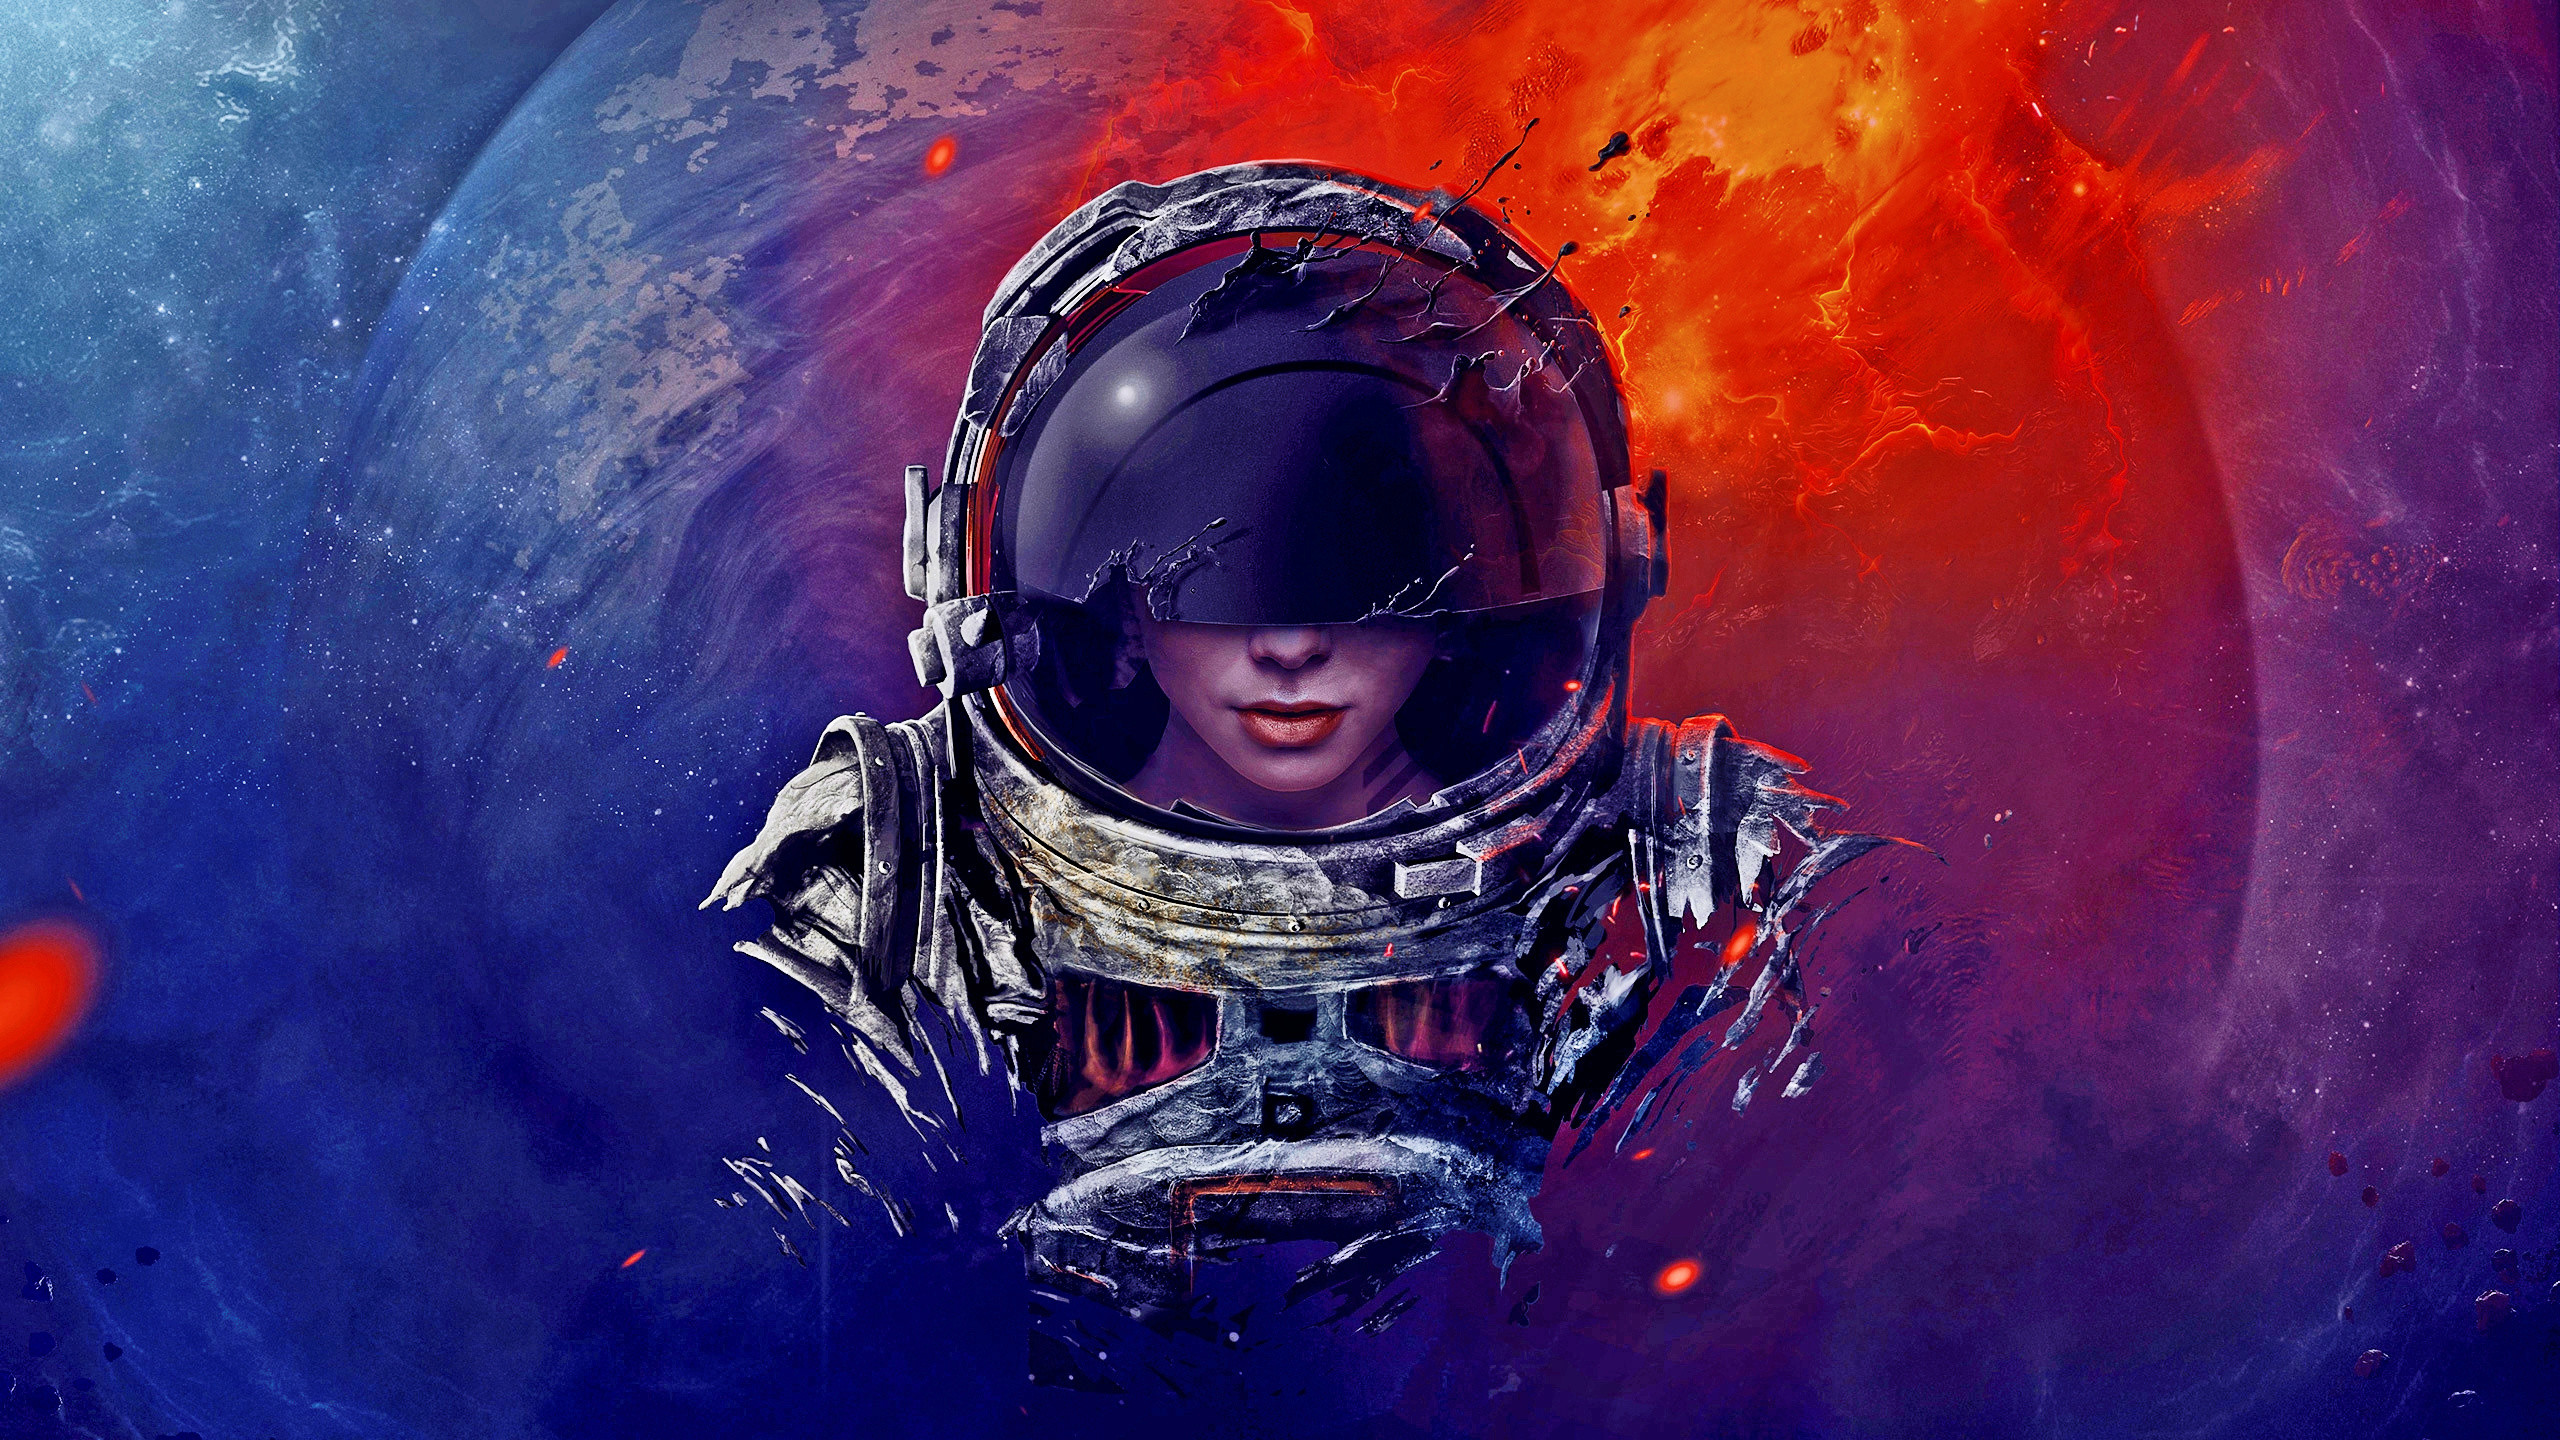 Res: 2560x1440, Back to 63+ Free Astronaut Wallpapers HD